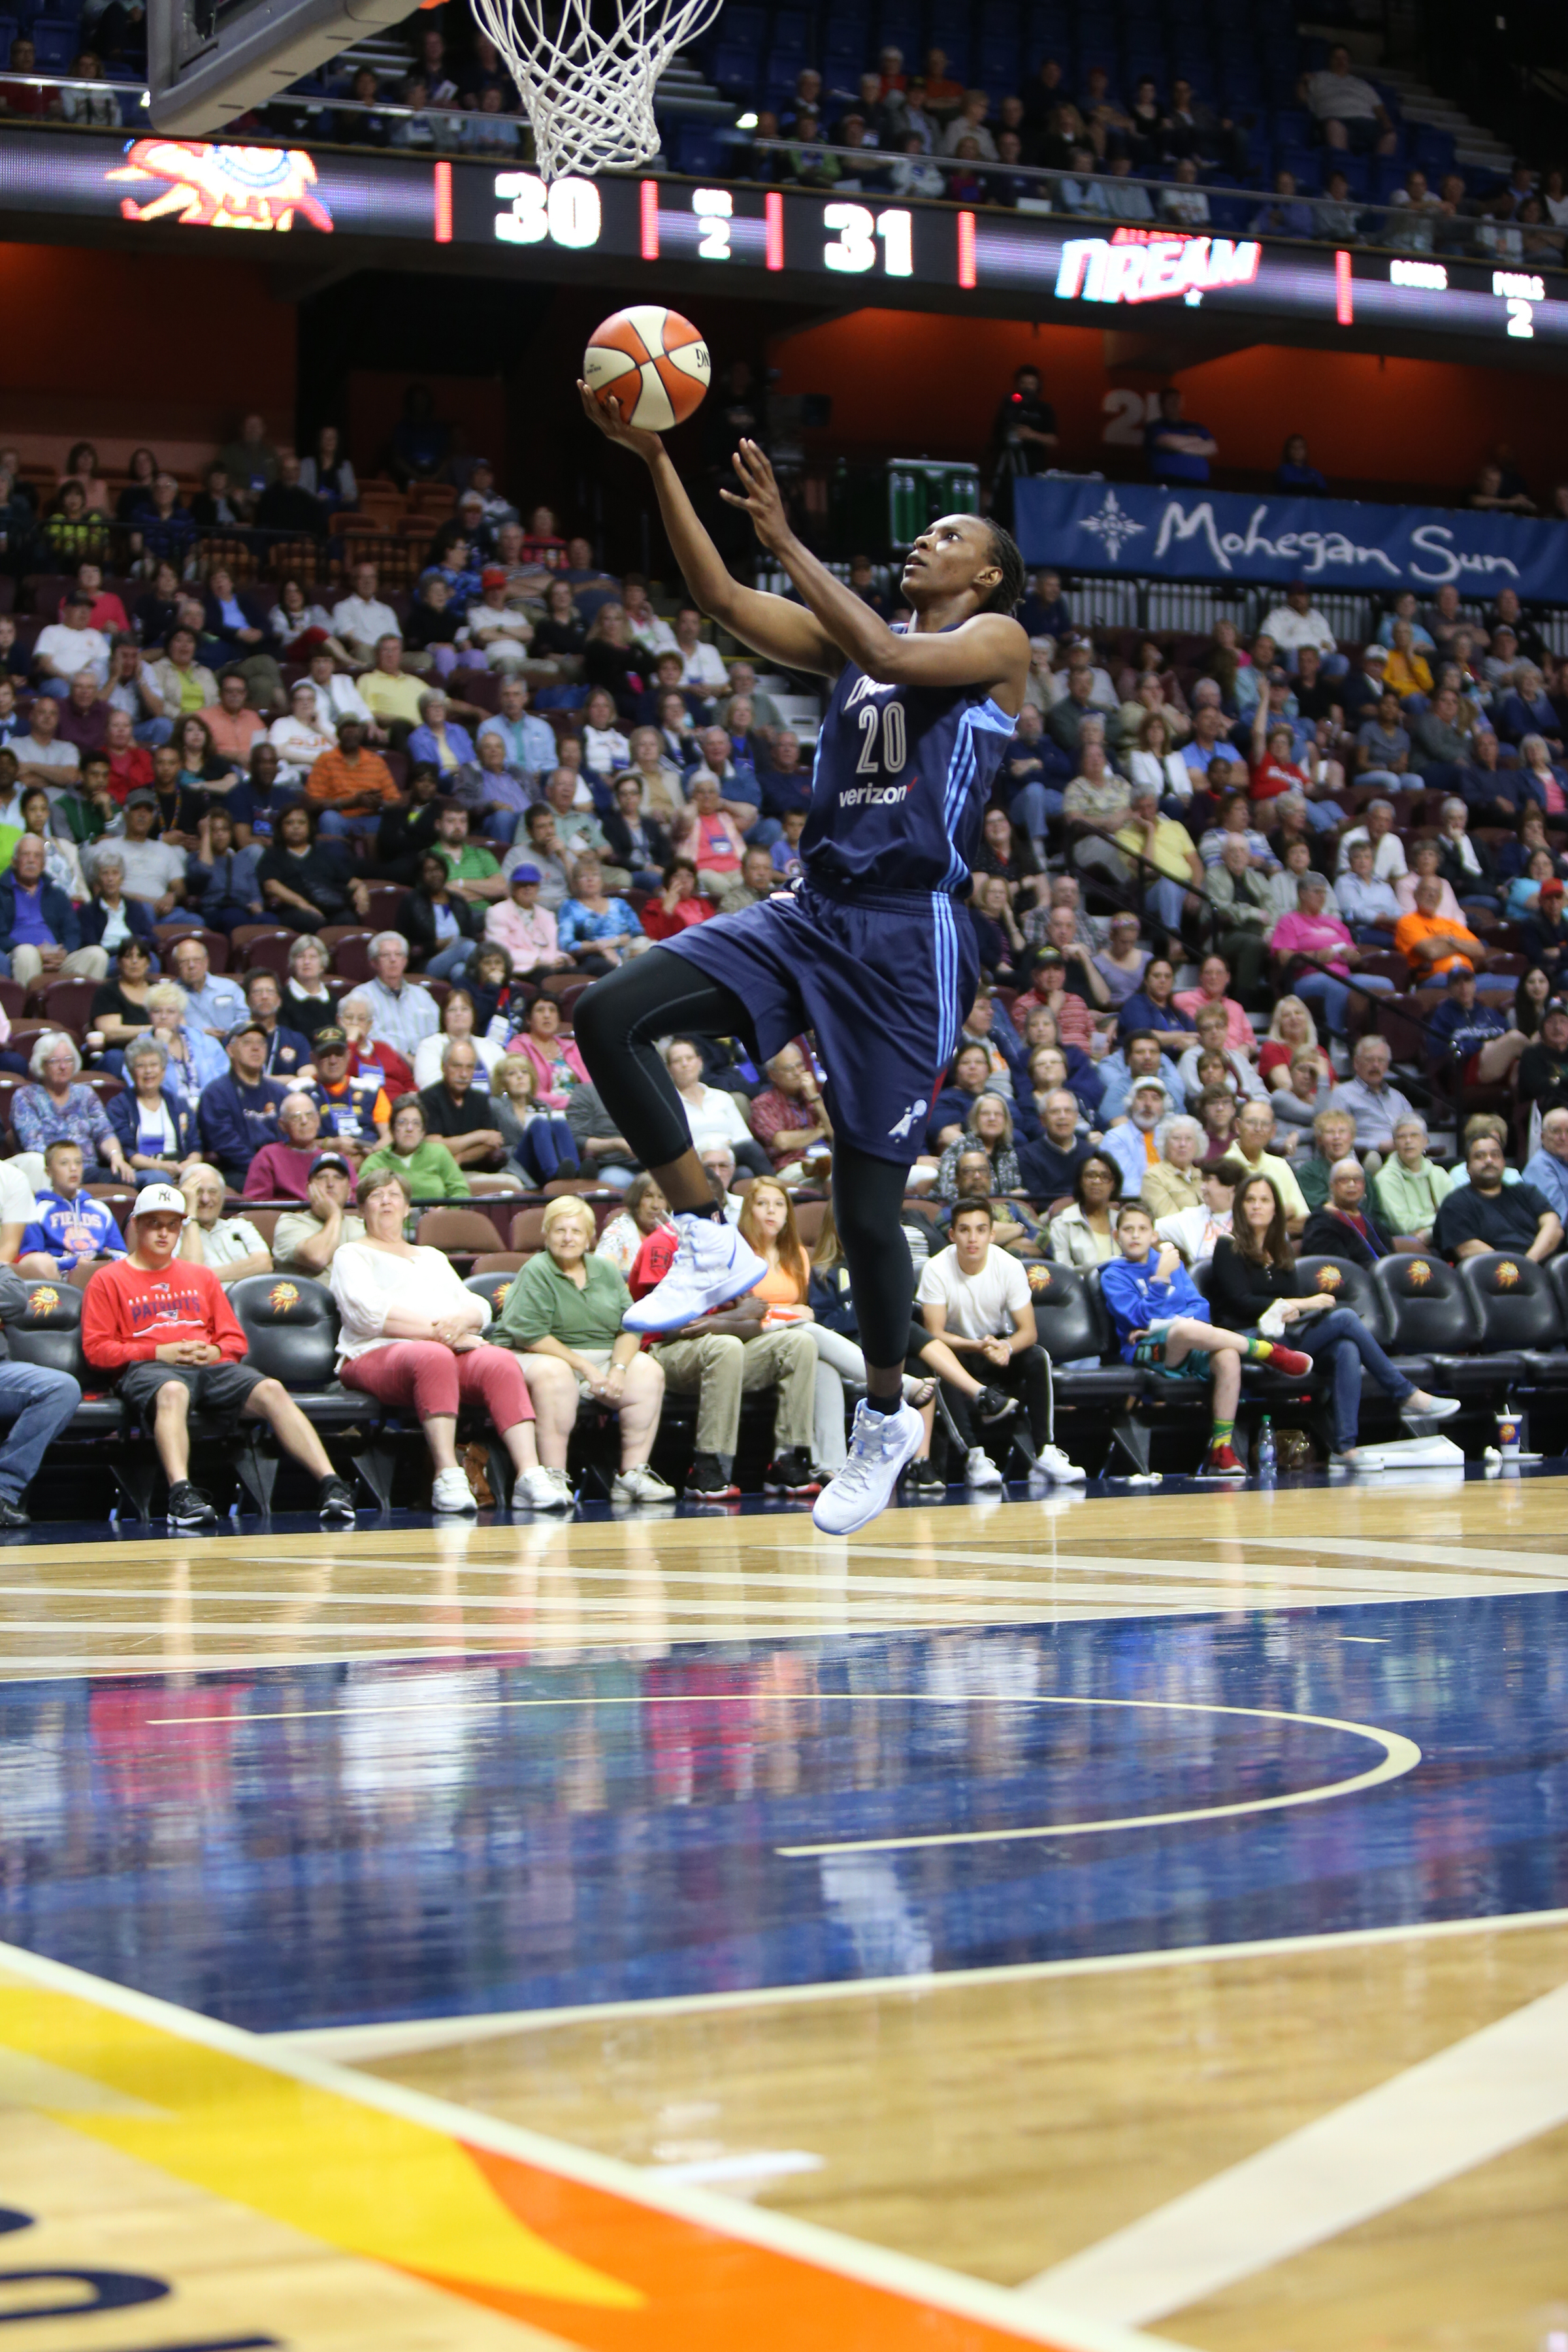 UNCASVILLE, CT - JUNE 3: Sancho Lyttle #20 of the Atlanta Dream goes for the lay up against the Connecticut Sun on June 3, 2016 at Mohegan Sun Arena in Uncasville, CT. NOTE TO USER: User expressly acknowledges and agrees that, by downloading and or using this Photograph, user is consenting to the terms and conditions of the Getty Images License Agreement. Mandatory Copyright Notice: Copyright 2016 NBAE (Photo by Chris Marion/NBAE via Getty Images)